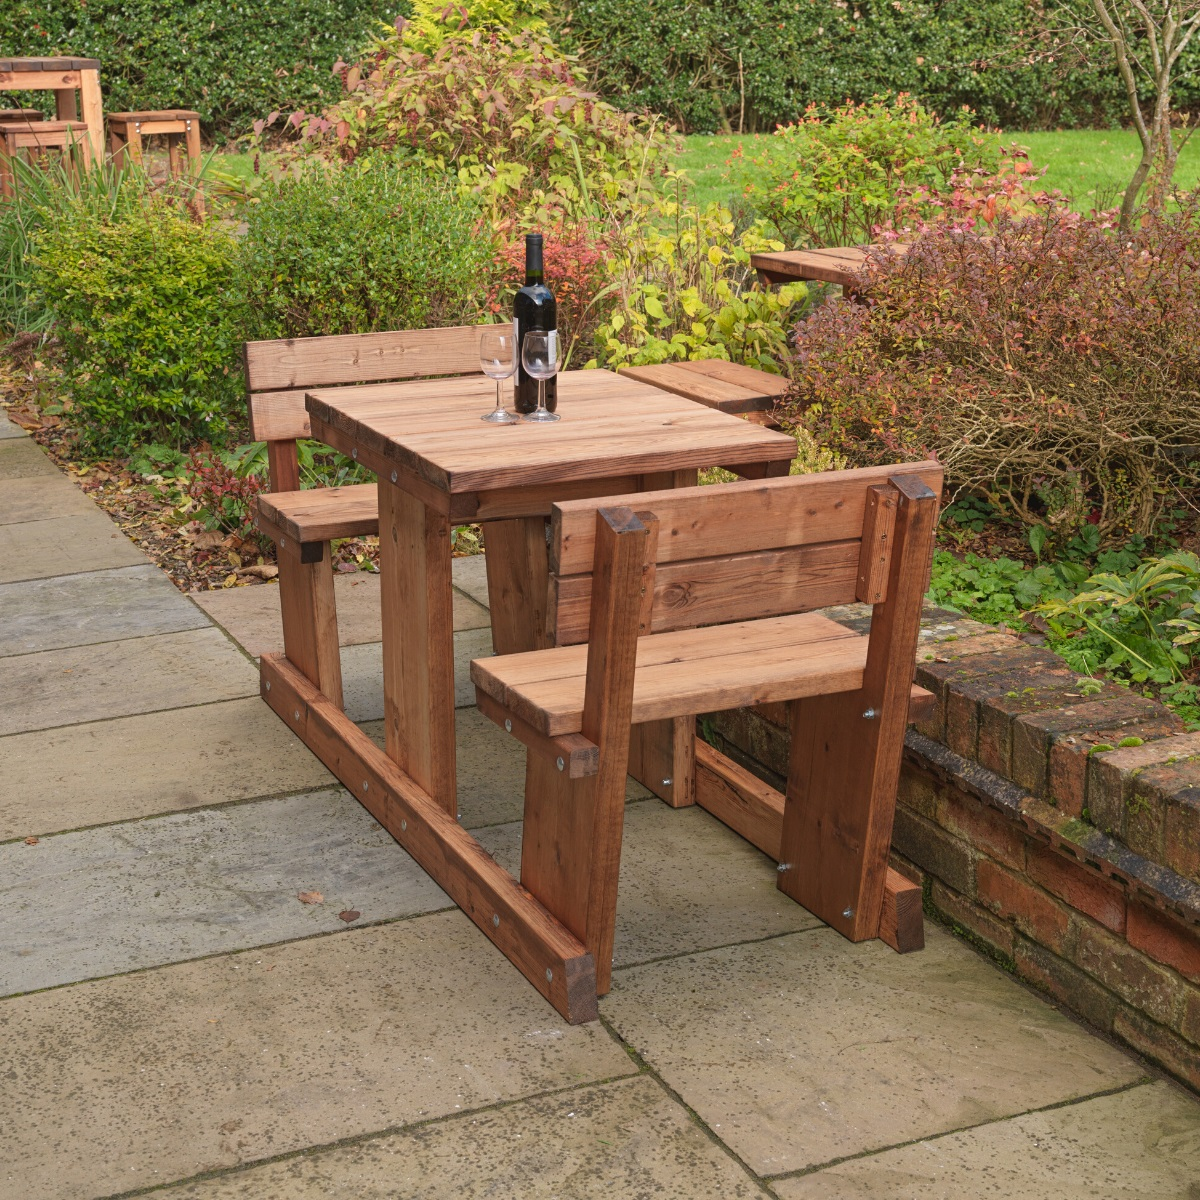 A Wooden 2 seater picnic table on a patio